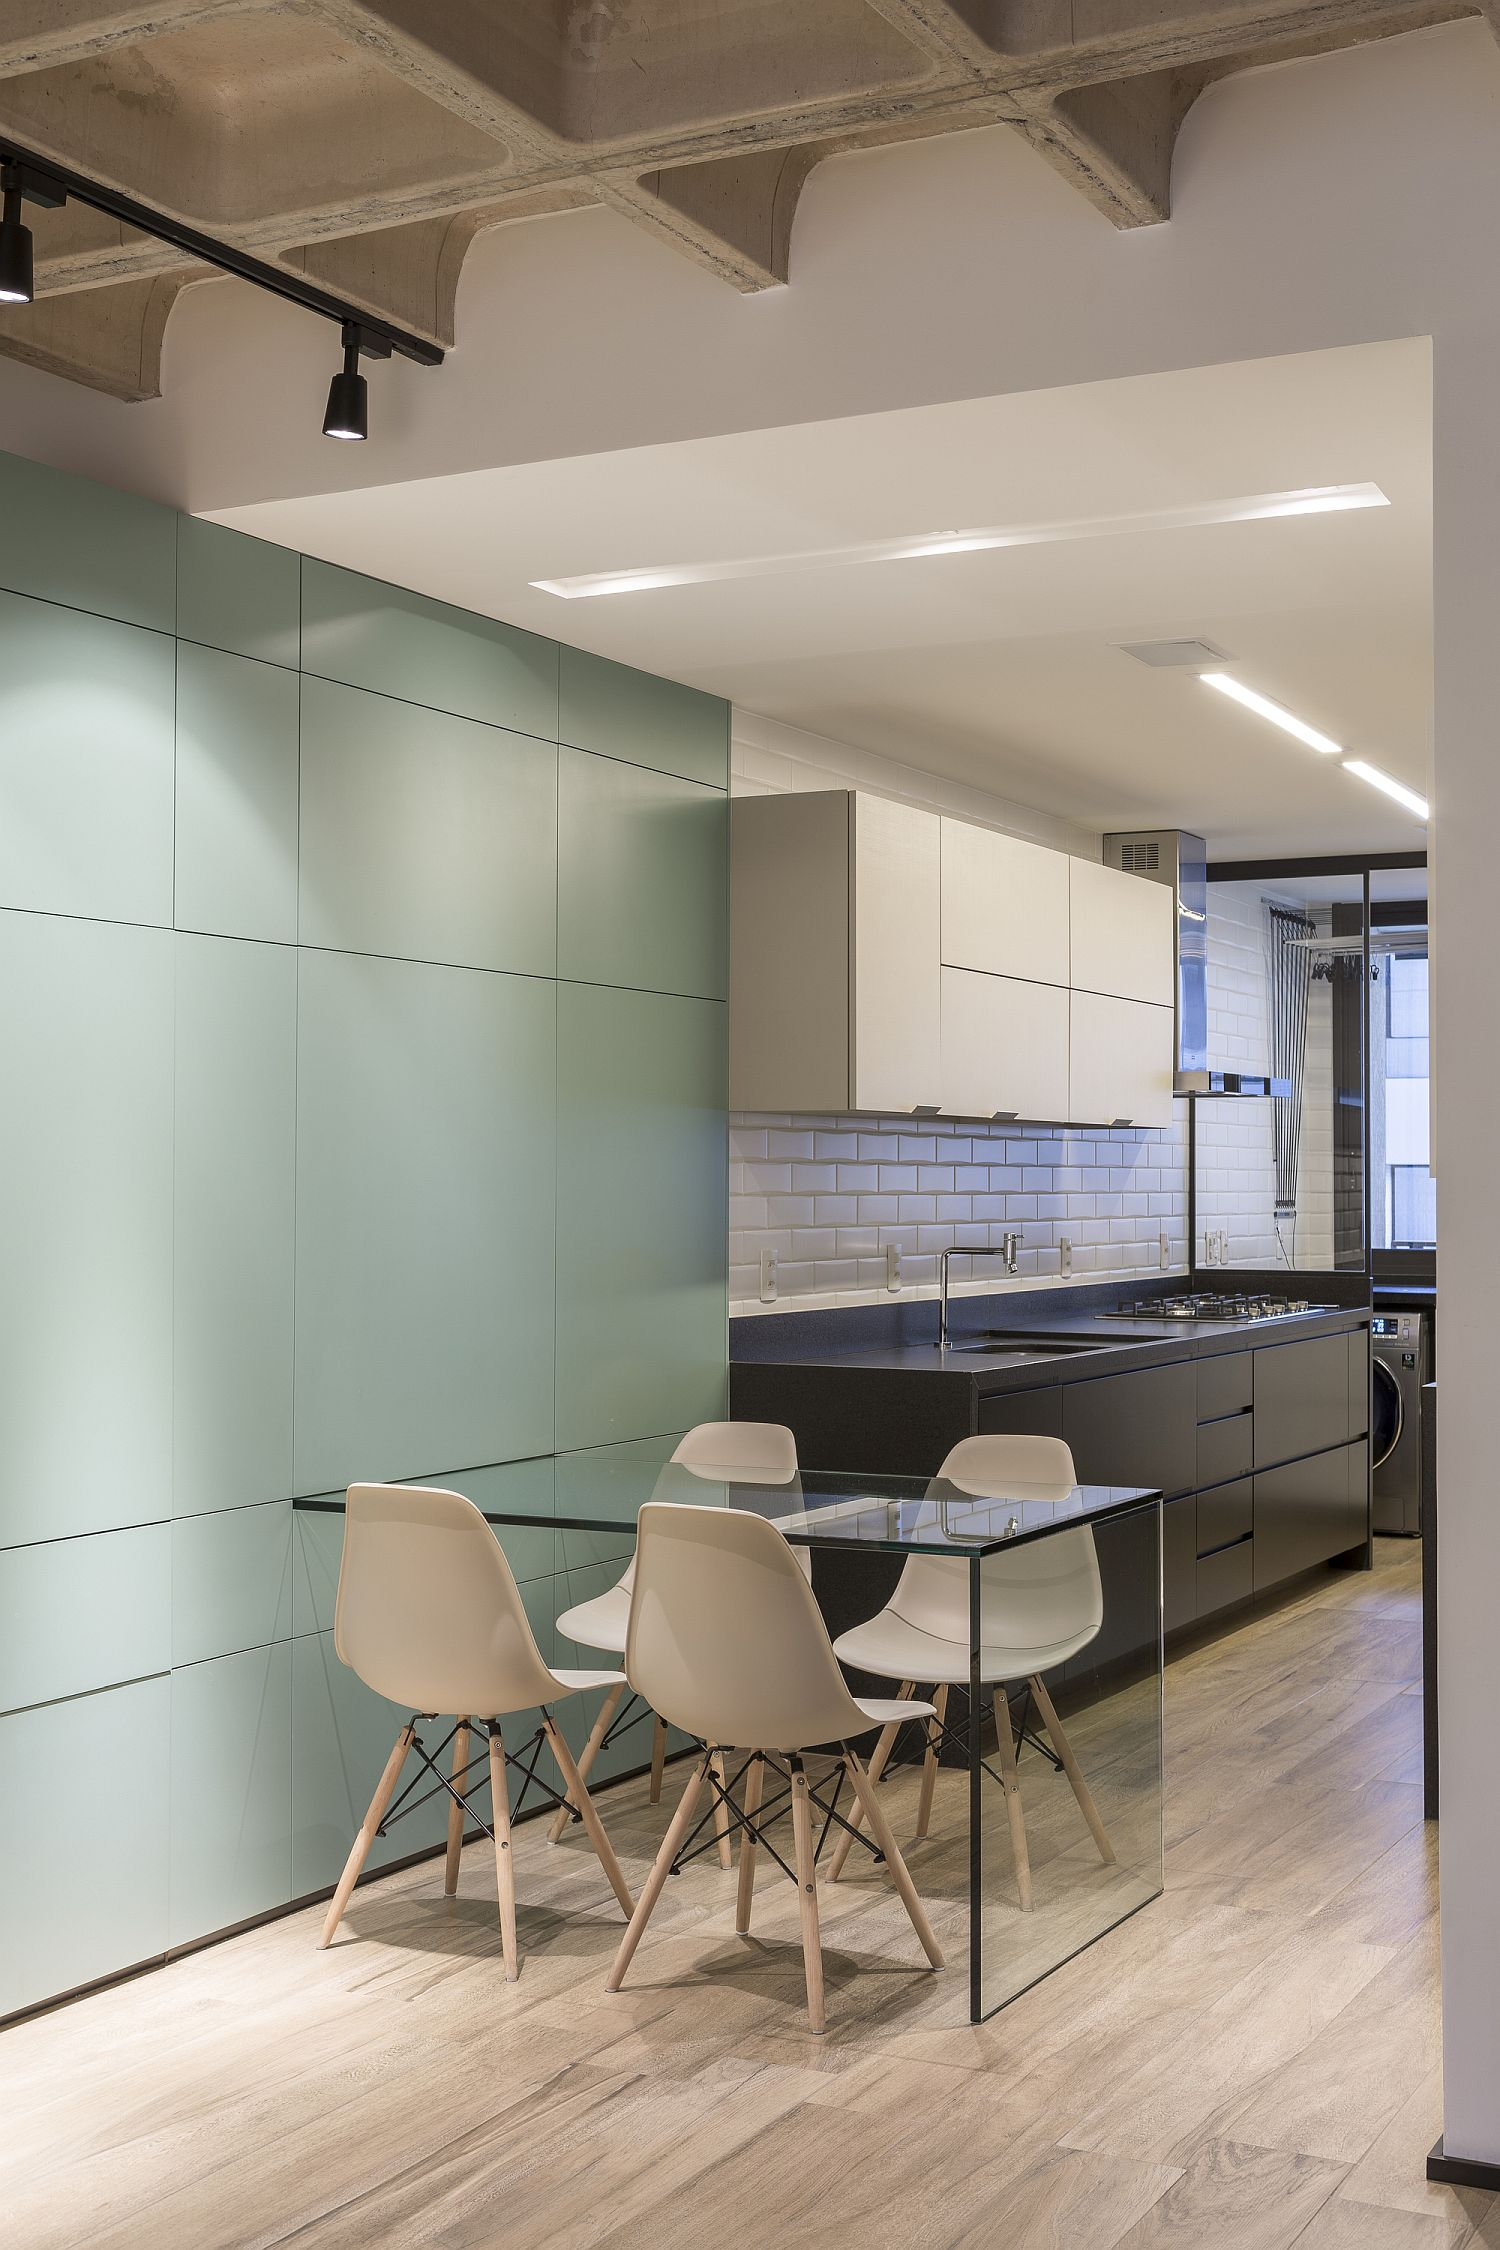 Bringing-out-the-dining-table-from-the-multifunctional-hallway-wall-unit